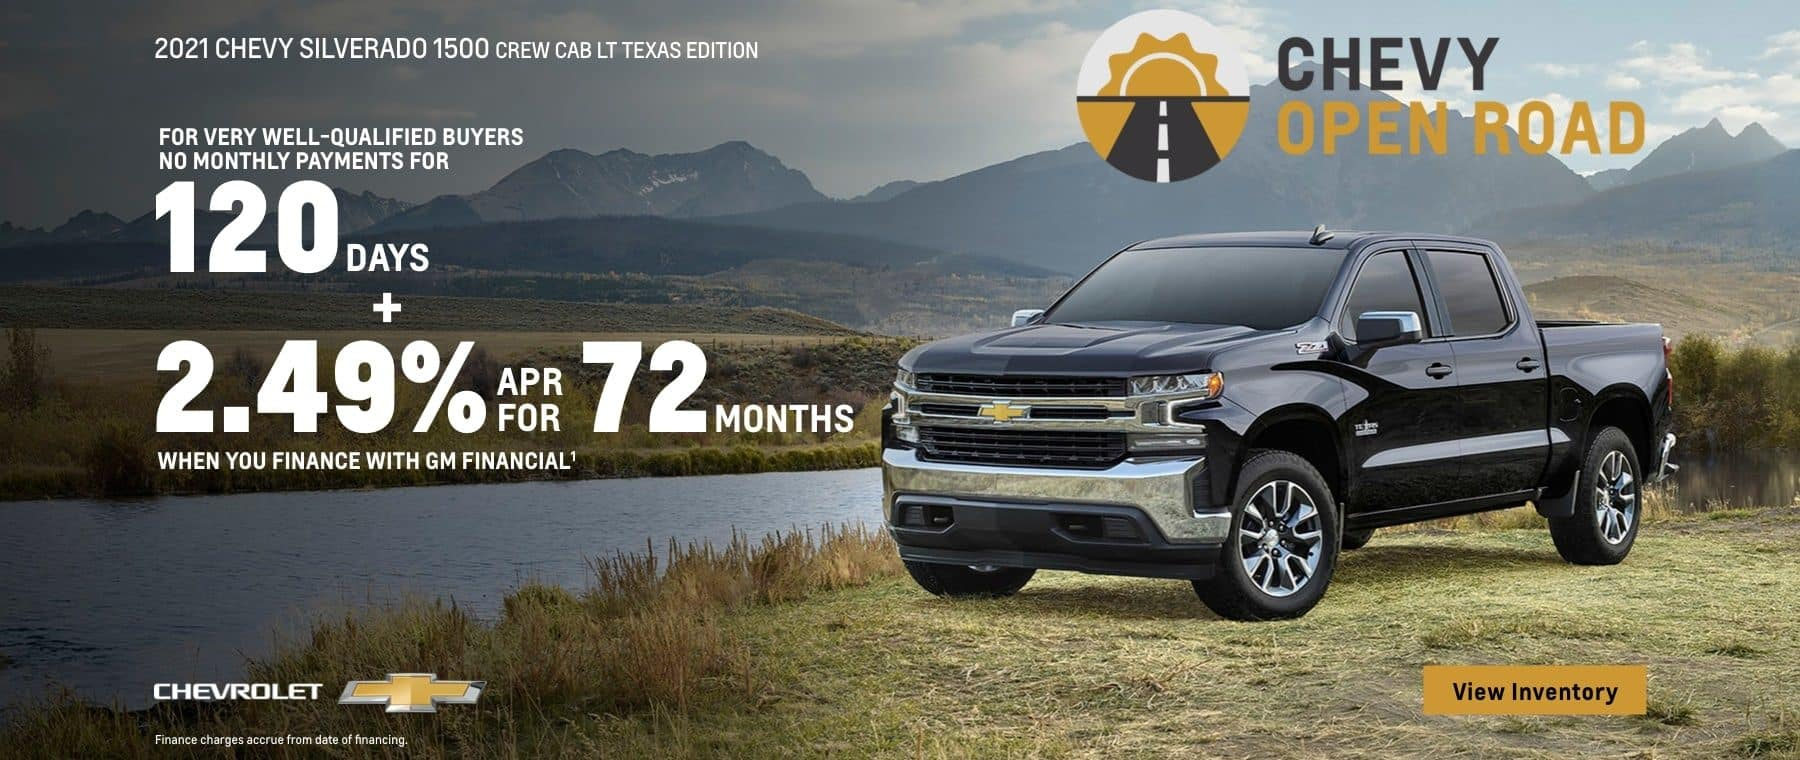 2021 Chevy Silverado 1500 Crew Cab LT Texas Edition. No monthly payments for 120 days for very well-qualified buyers. Plus, 2.49% APR for 72 months when you finance with GM Financial.